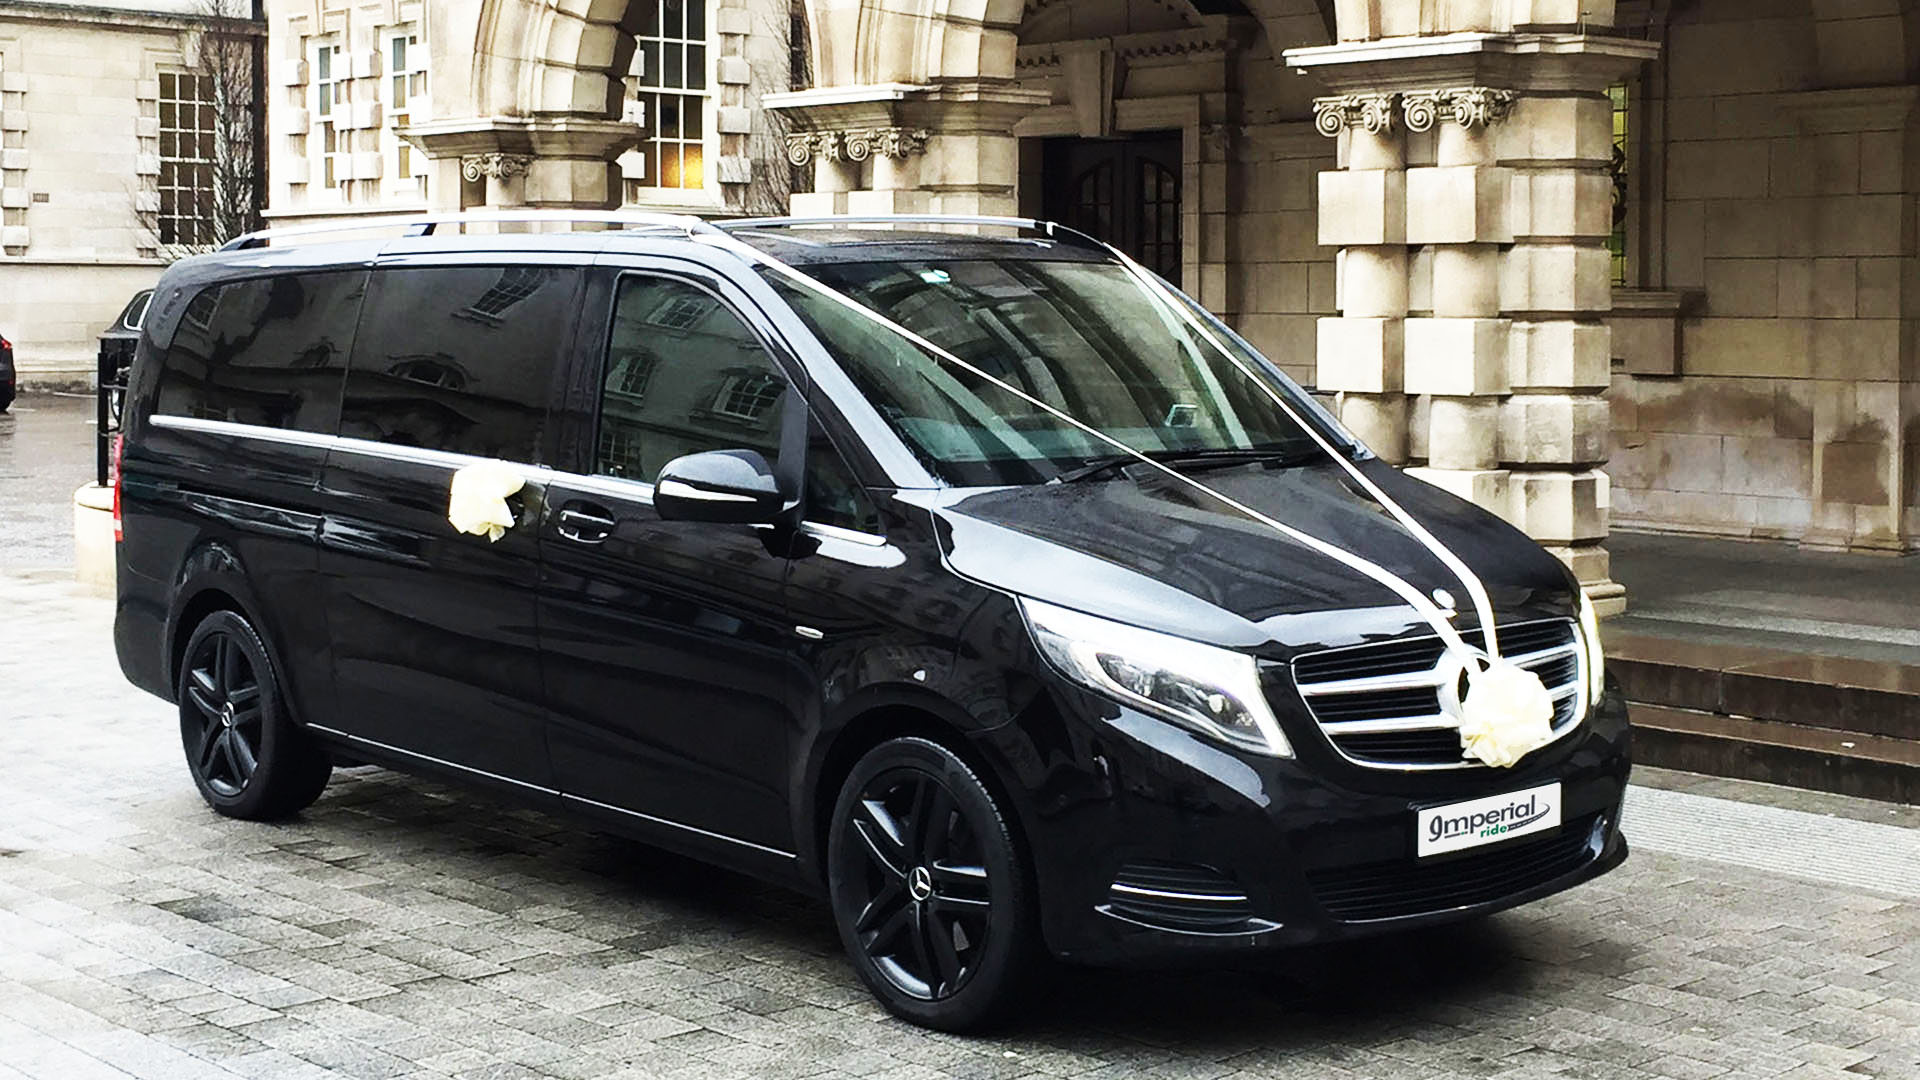 v-class-wedding-hire-in-hammersmith